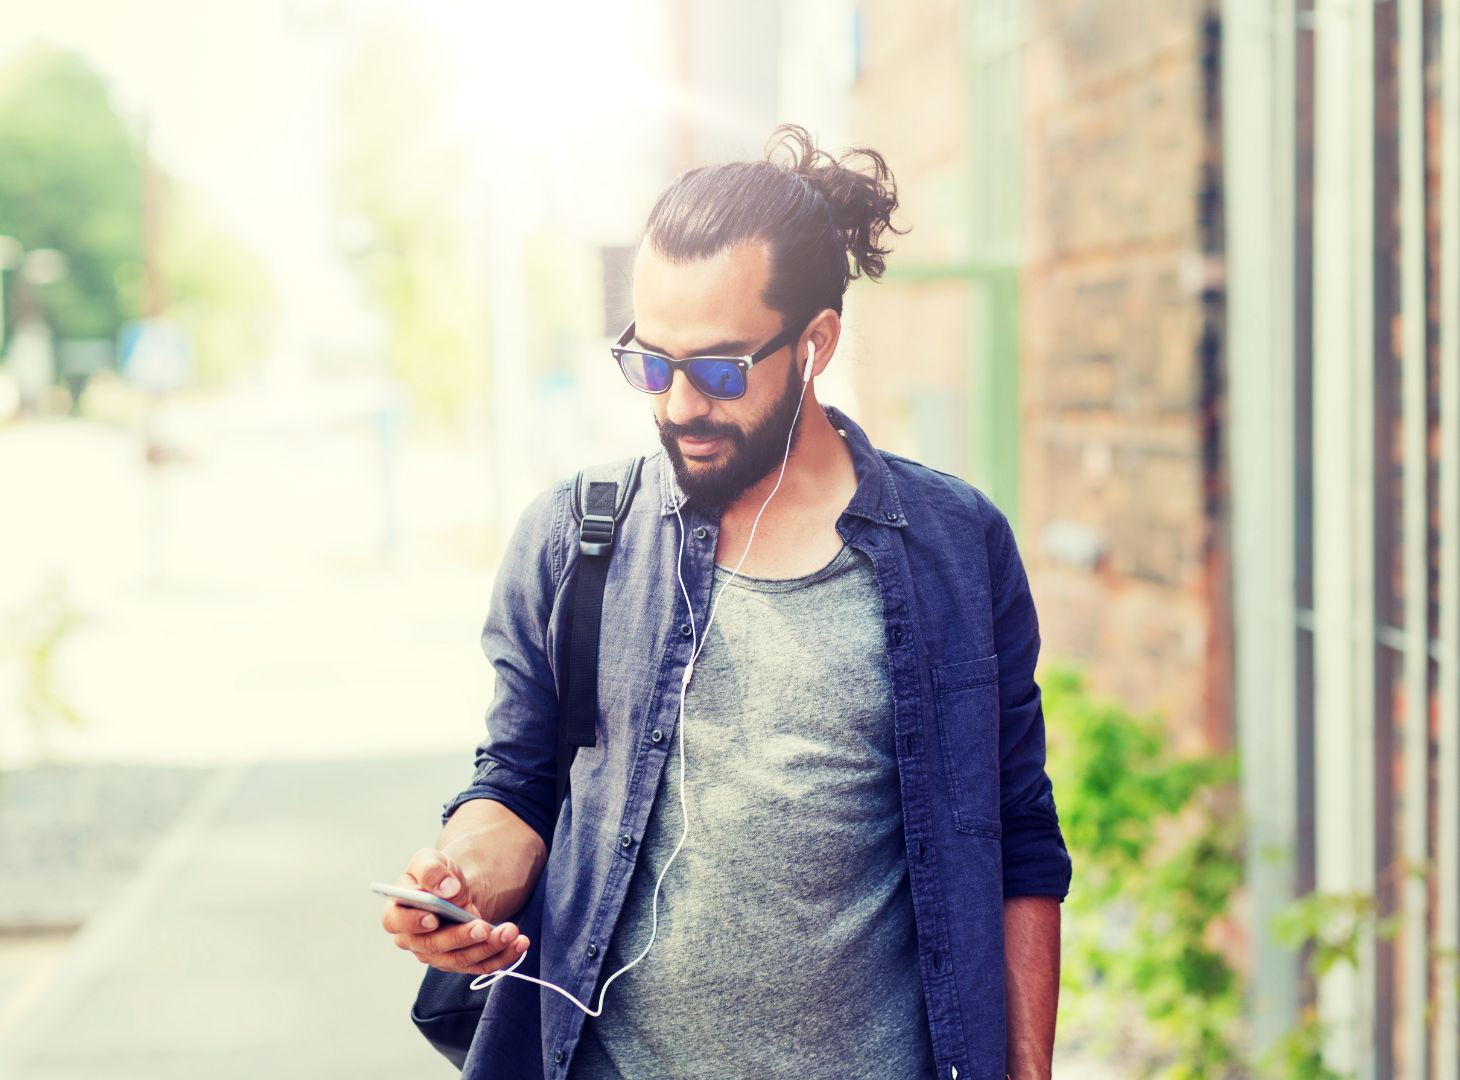 Image of man walking down road listening to a podcast